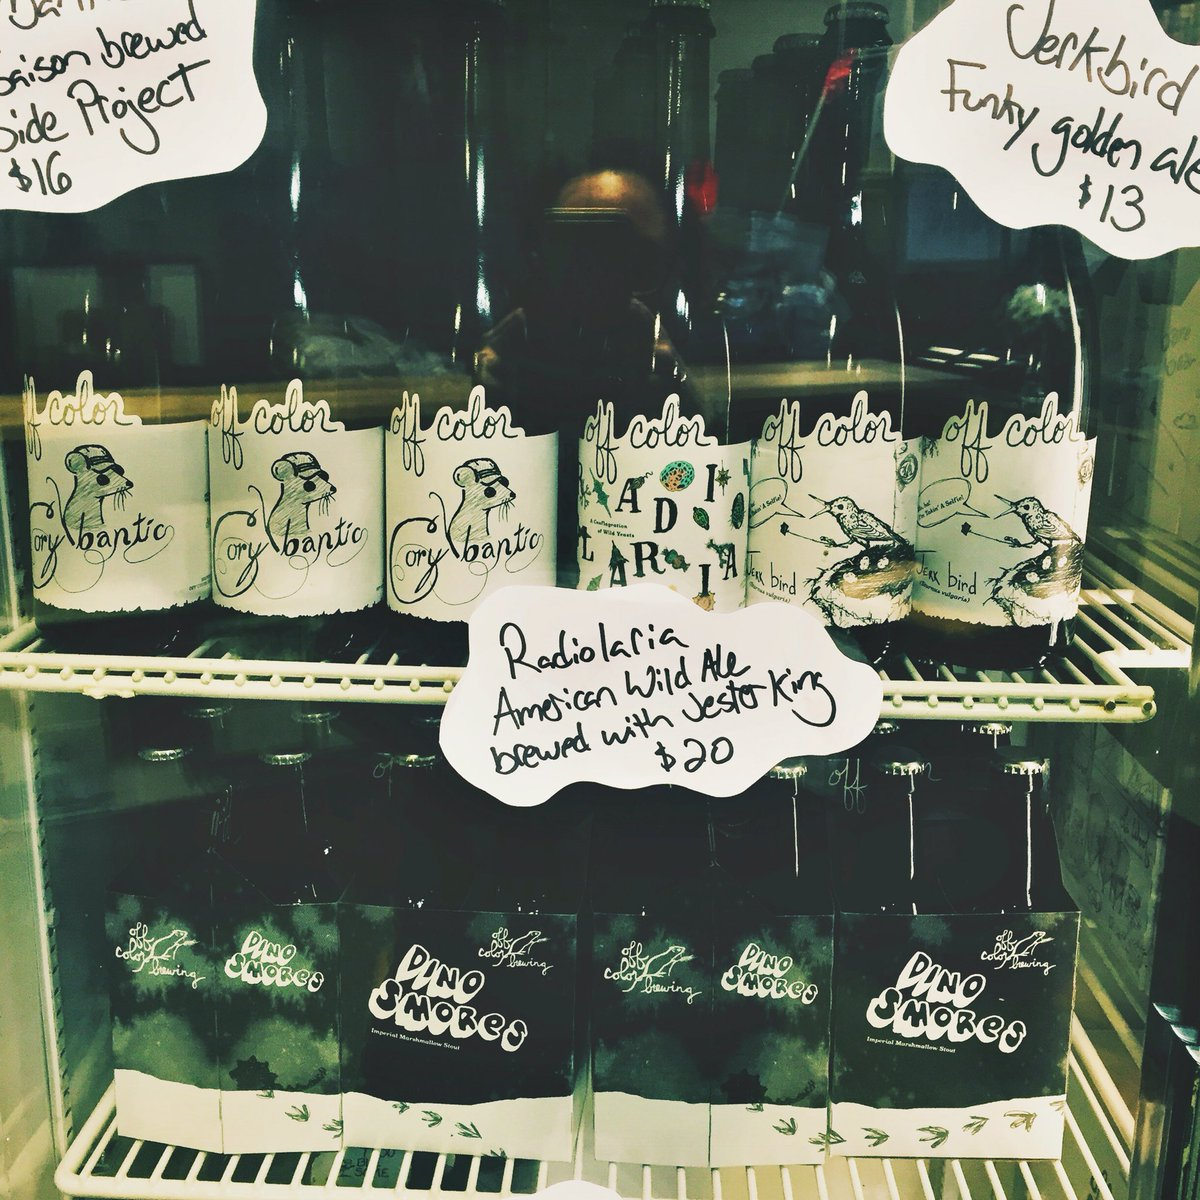 The @offcolorbrewing shop is open! #Dinosmores, Radiolaria, Corybantic, Jerkbird + fresh Bare Bare & Troublesome https://t.co/5YBE2qt5M2